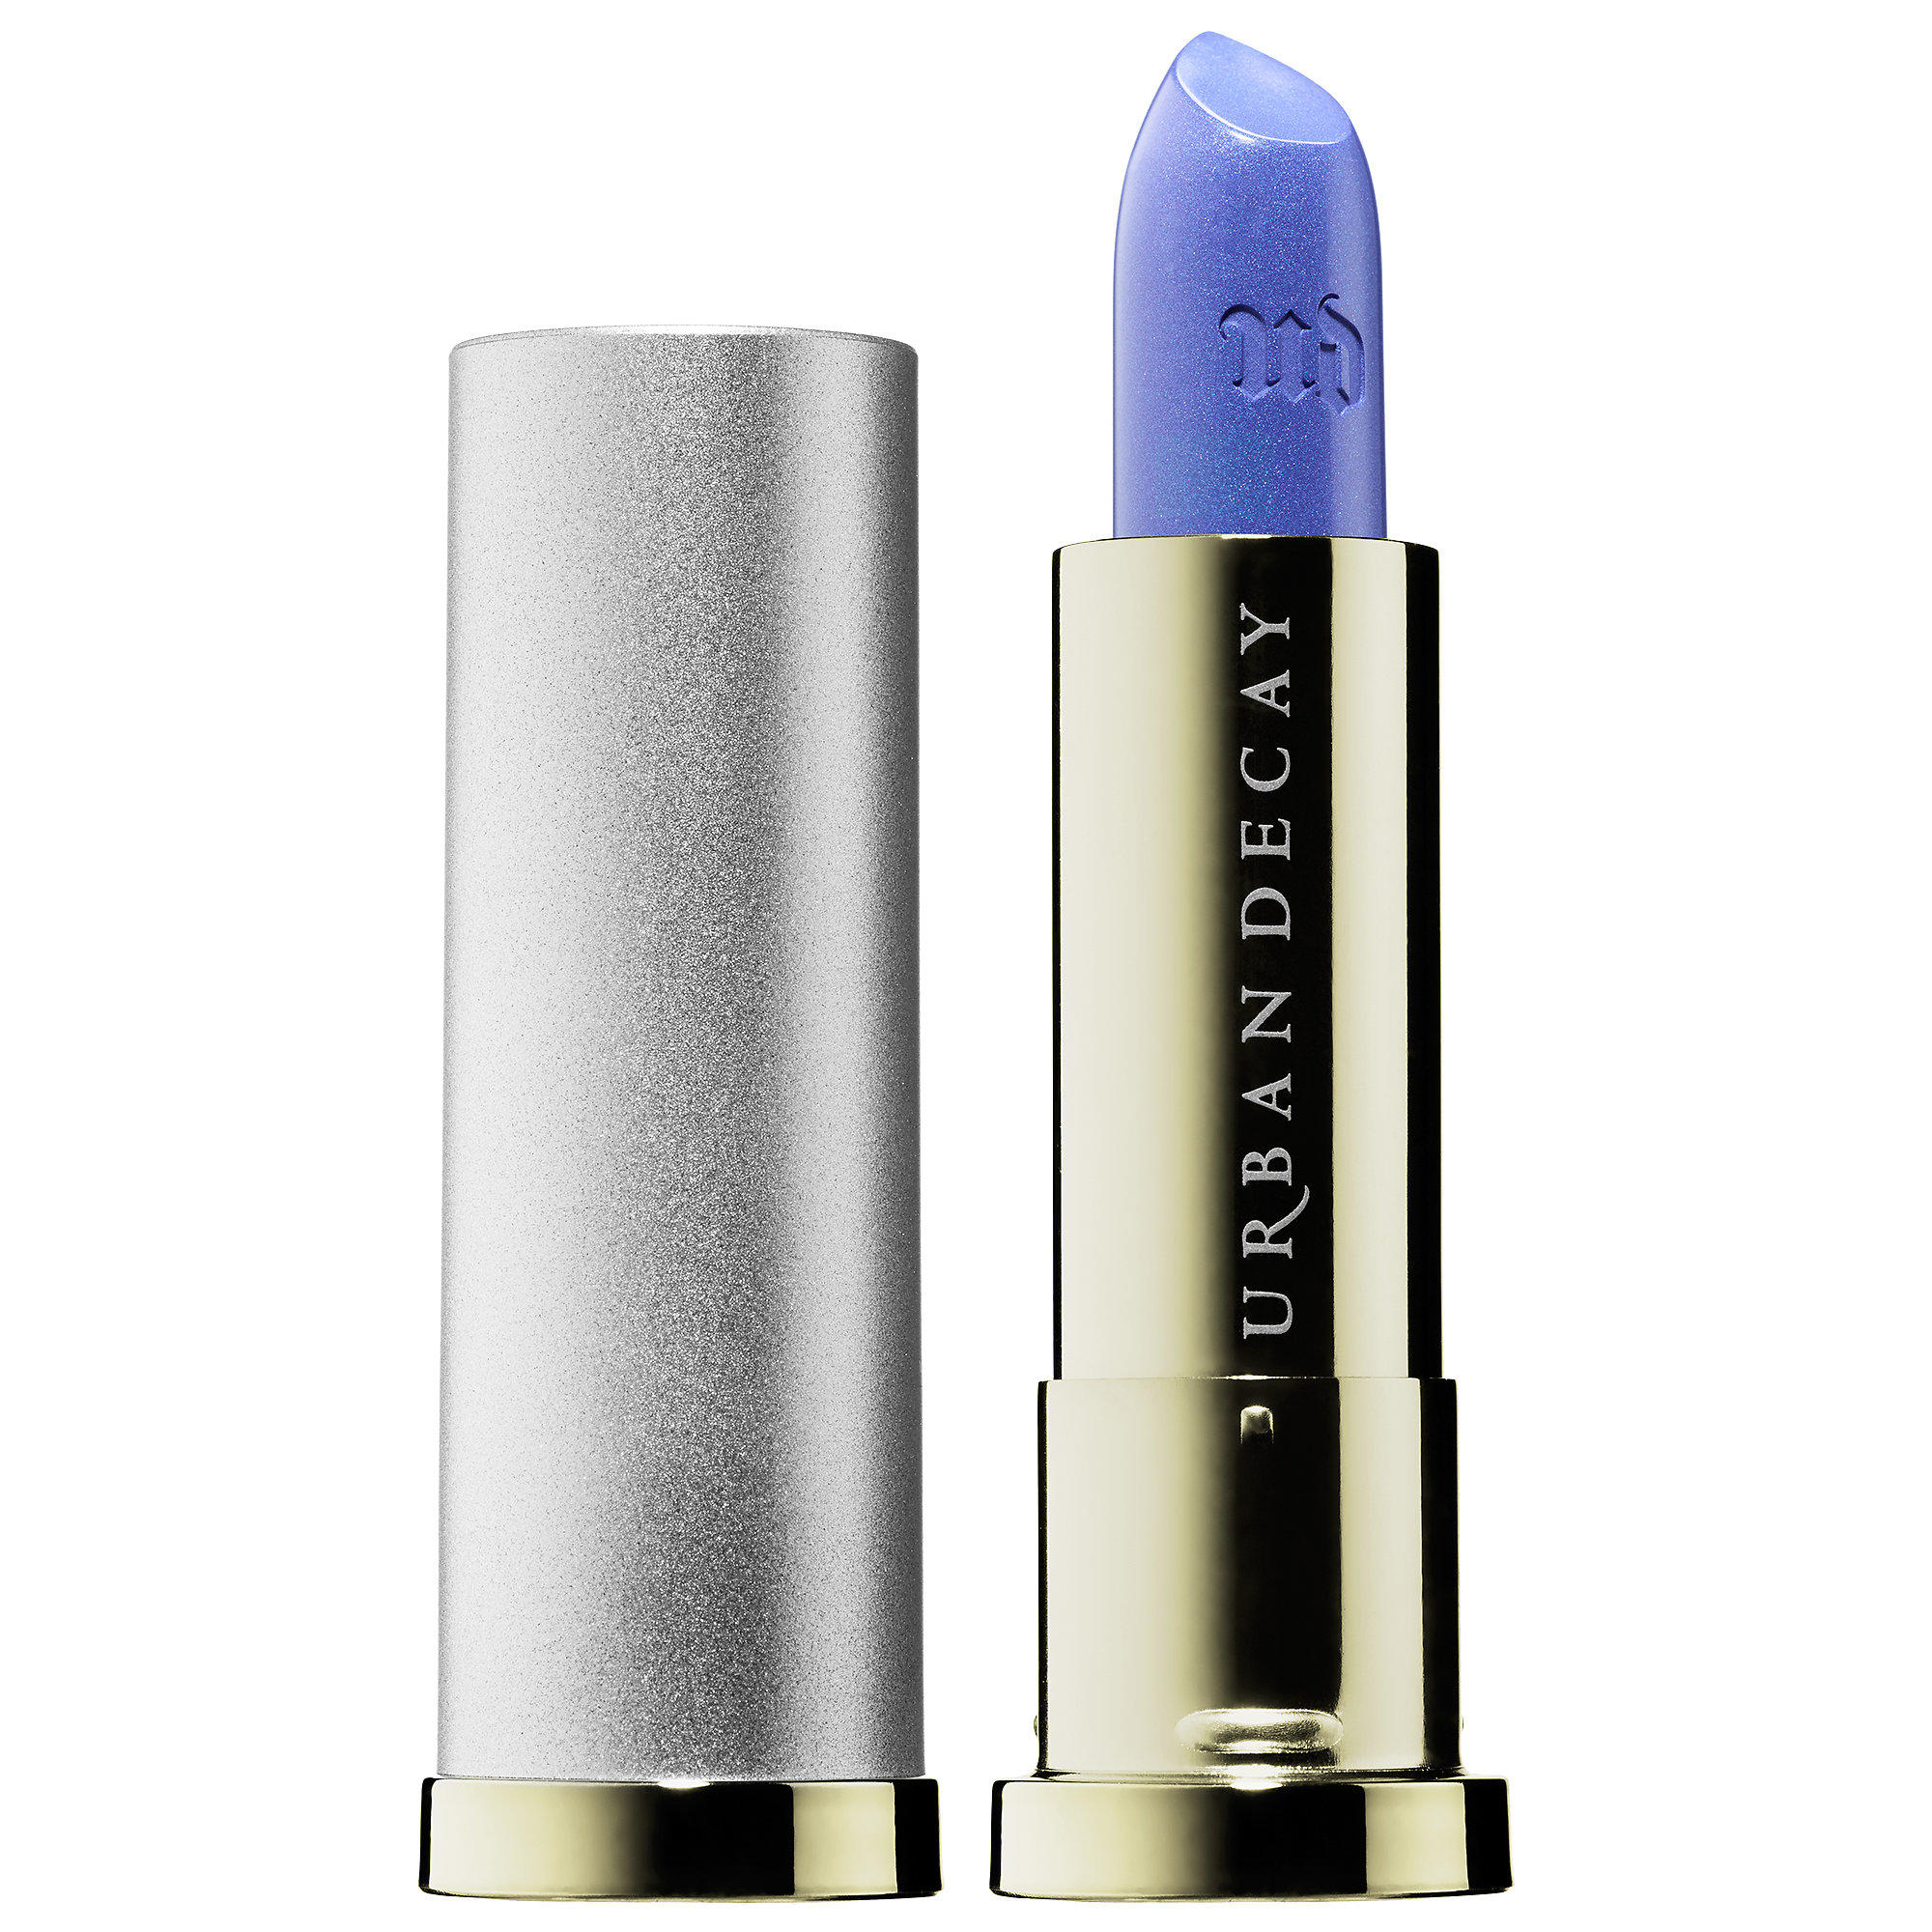 Urban Decay Vice Vintage Capsule Collection Lipstick UV-B